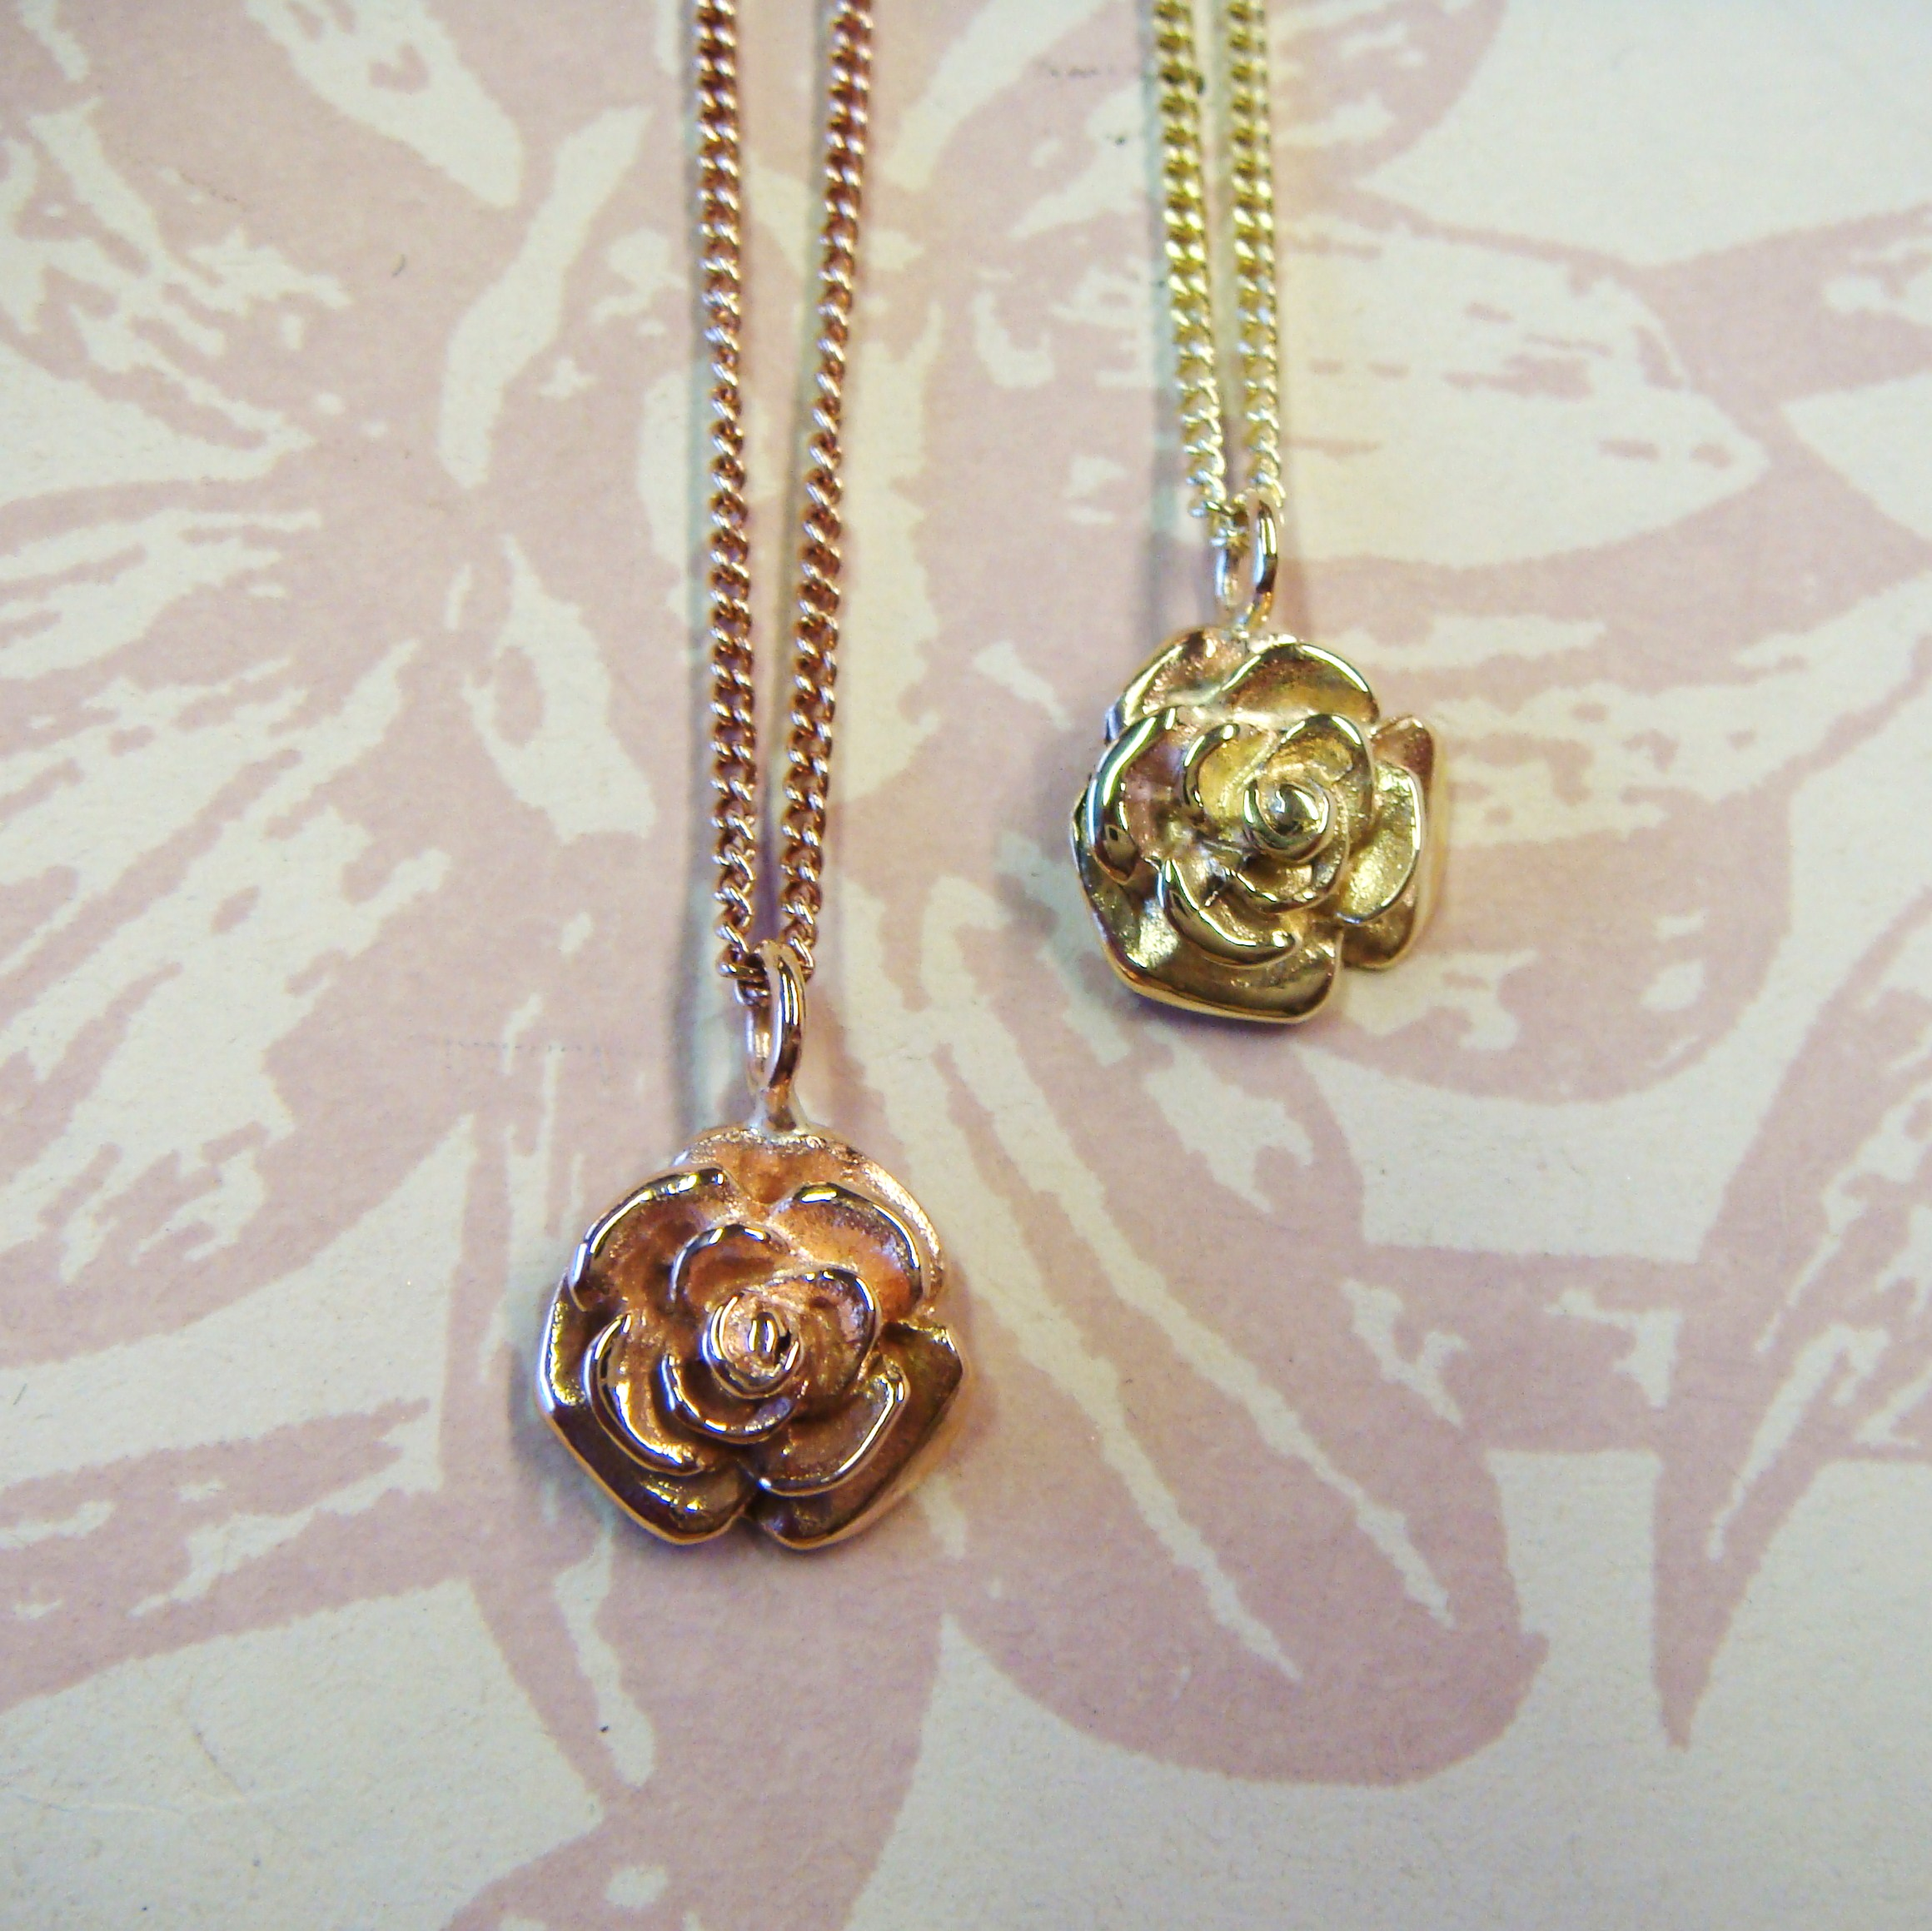 Gold Rose Necklace